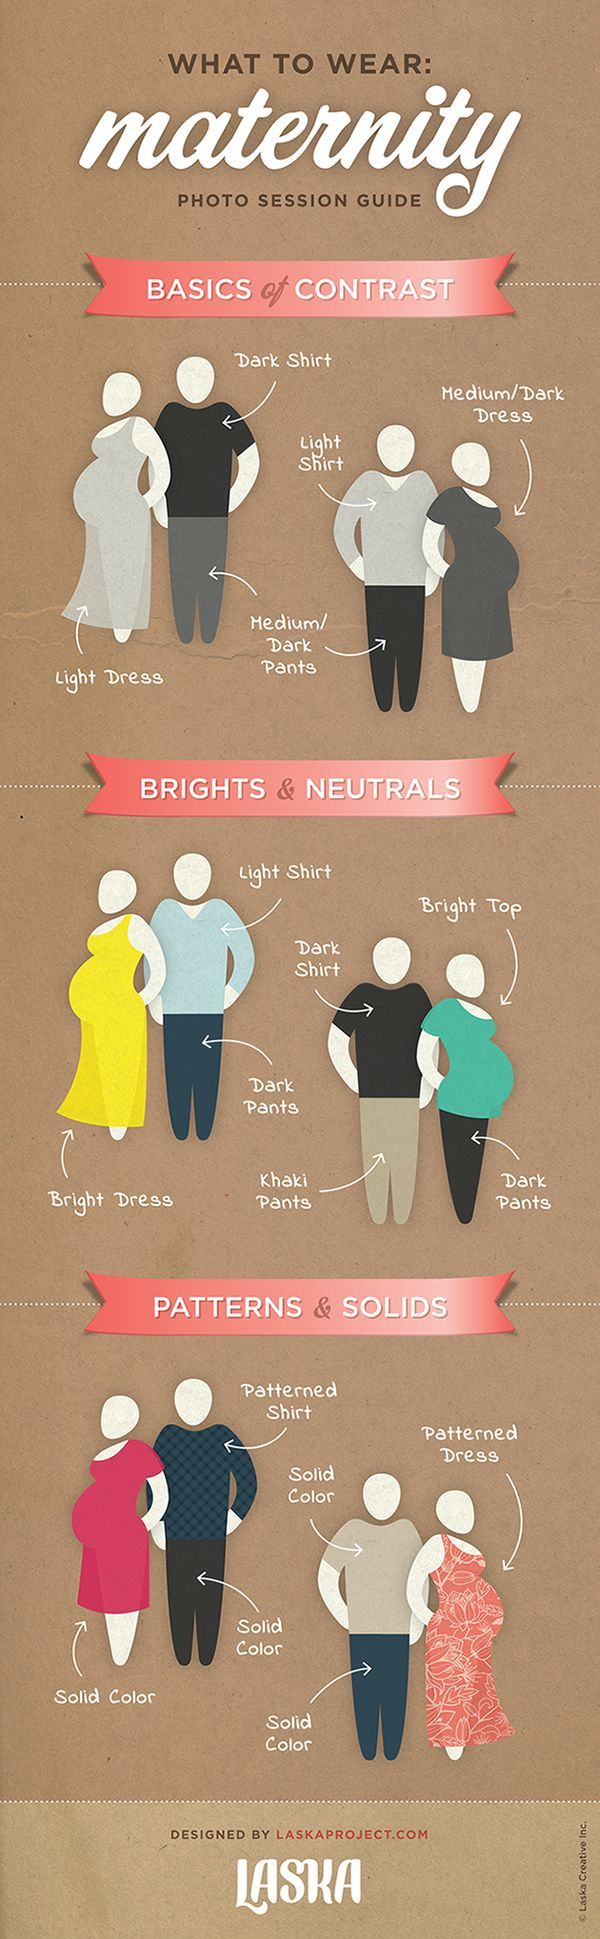 What to wear: a guide to the maternity photo session.